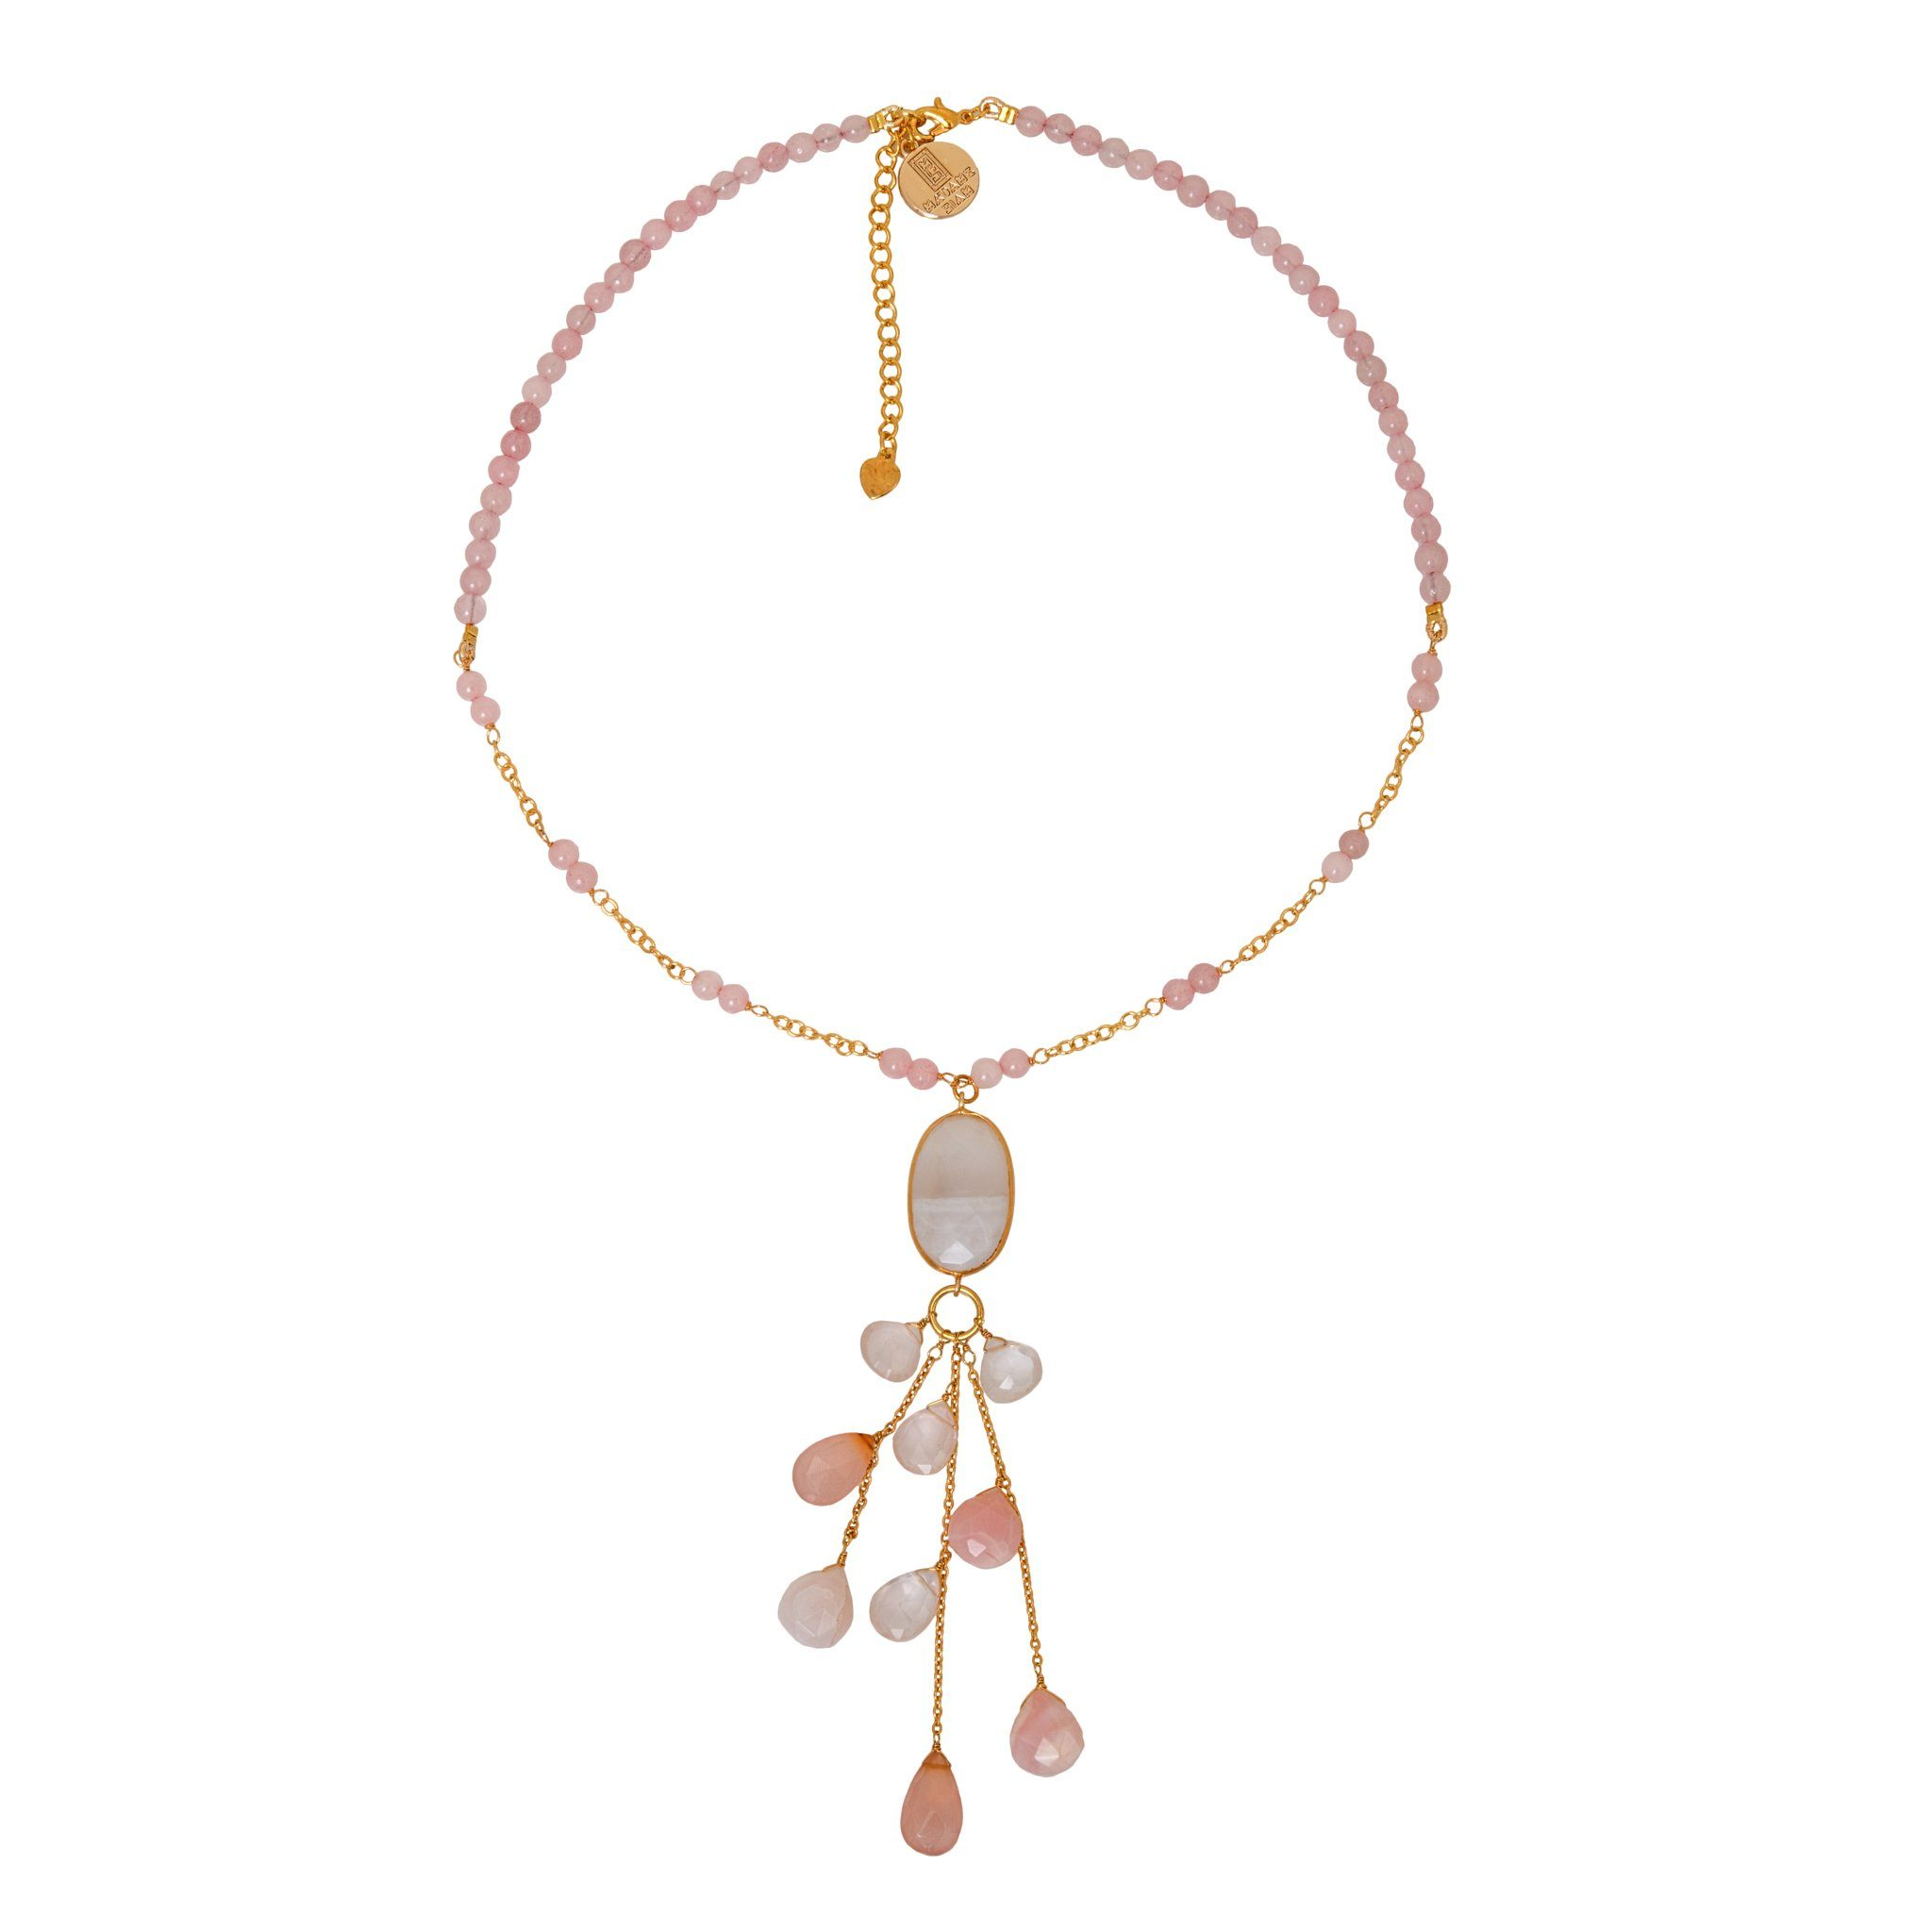 LUZ rose quartz chocker with drops - MadamSiam